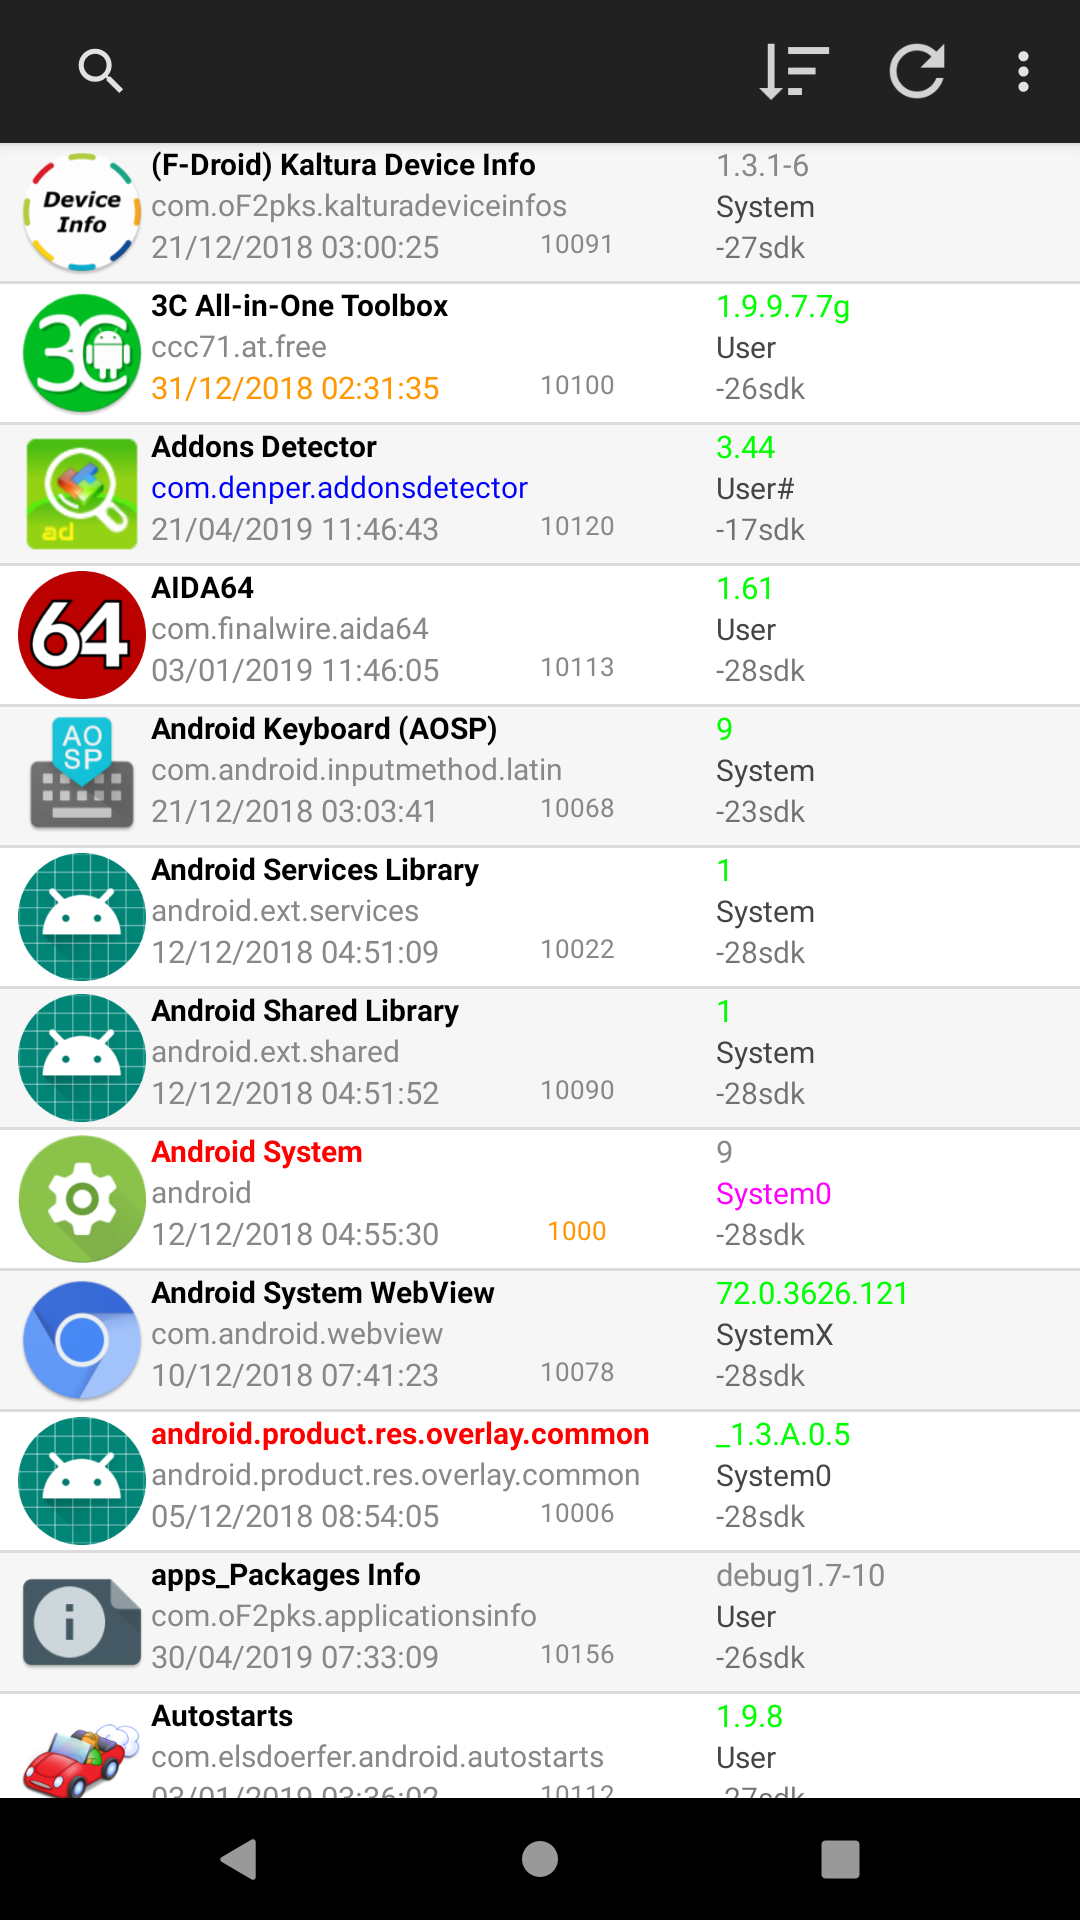 Screenshot of apps_Packages Info